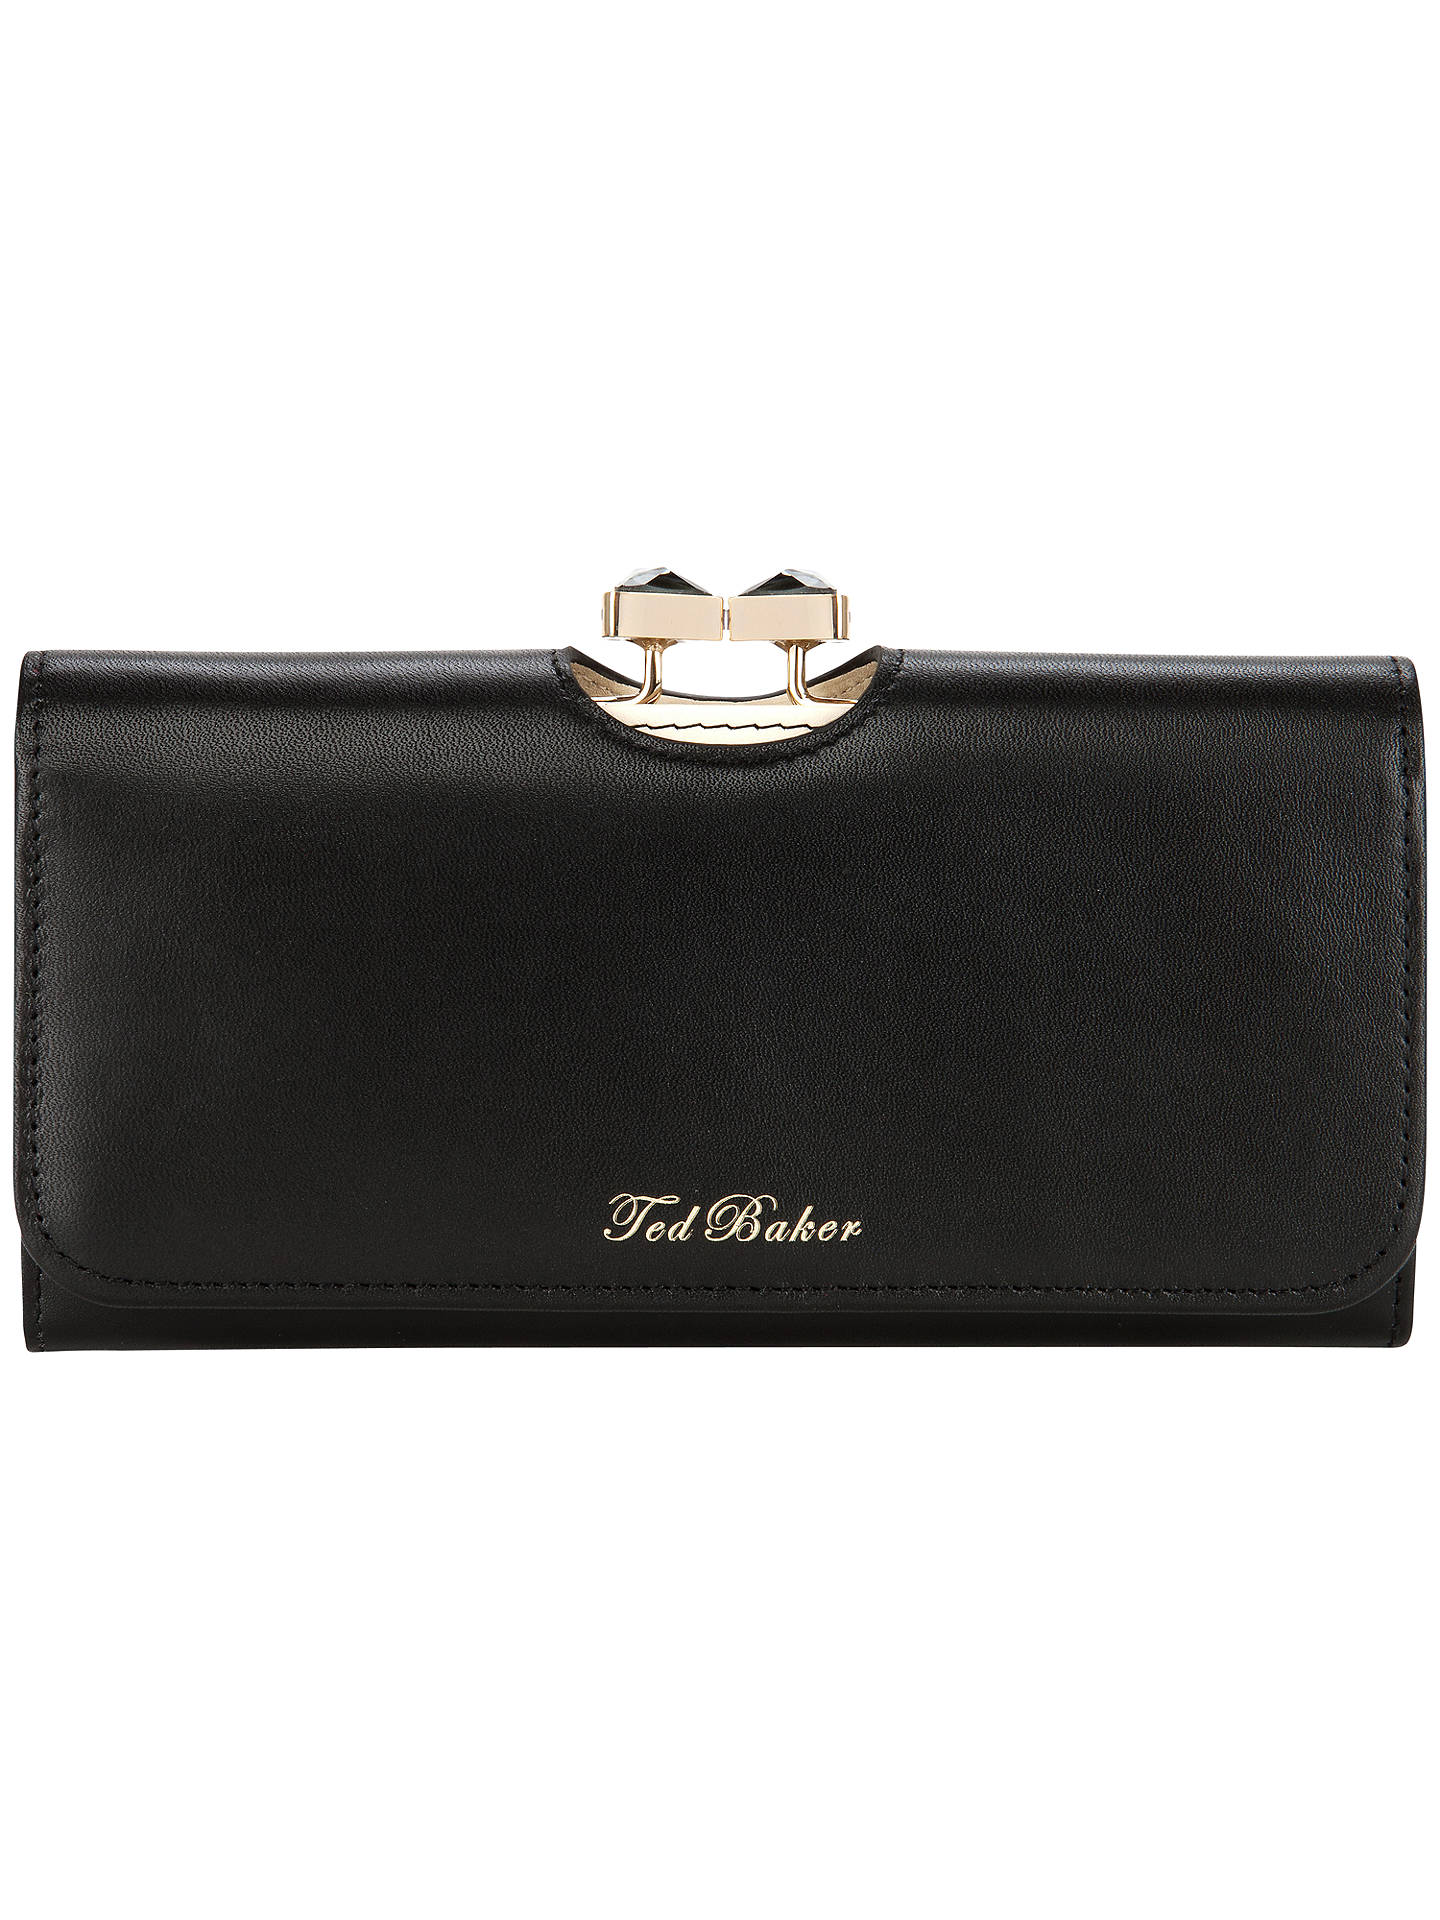 630145c9f Ted Baker Caleena Jewelled Bow Leather Matinee Purse at John Lewis ...